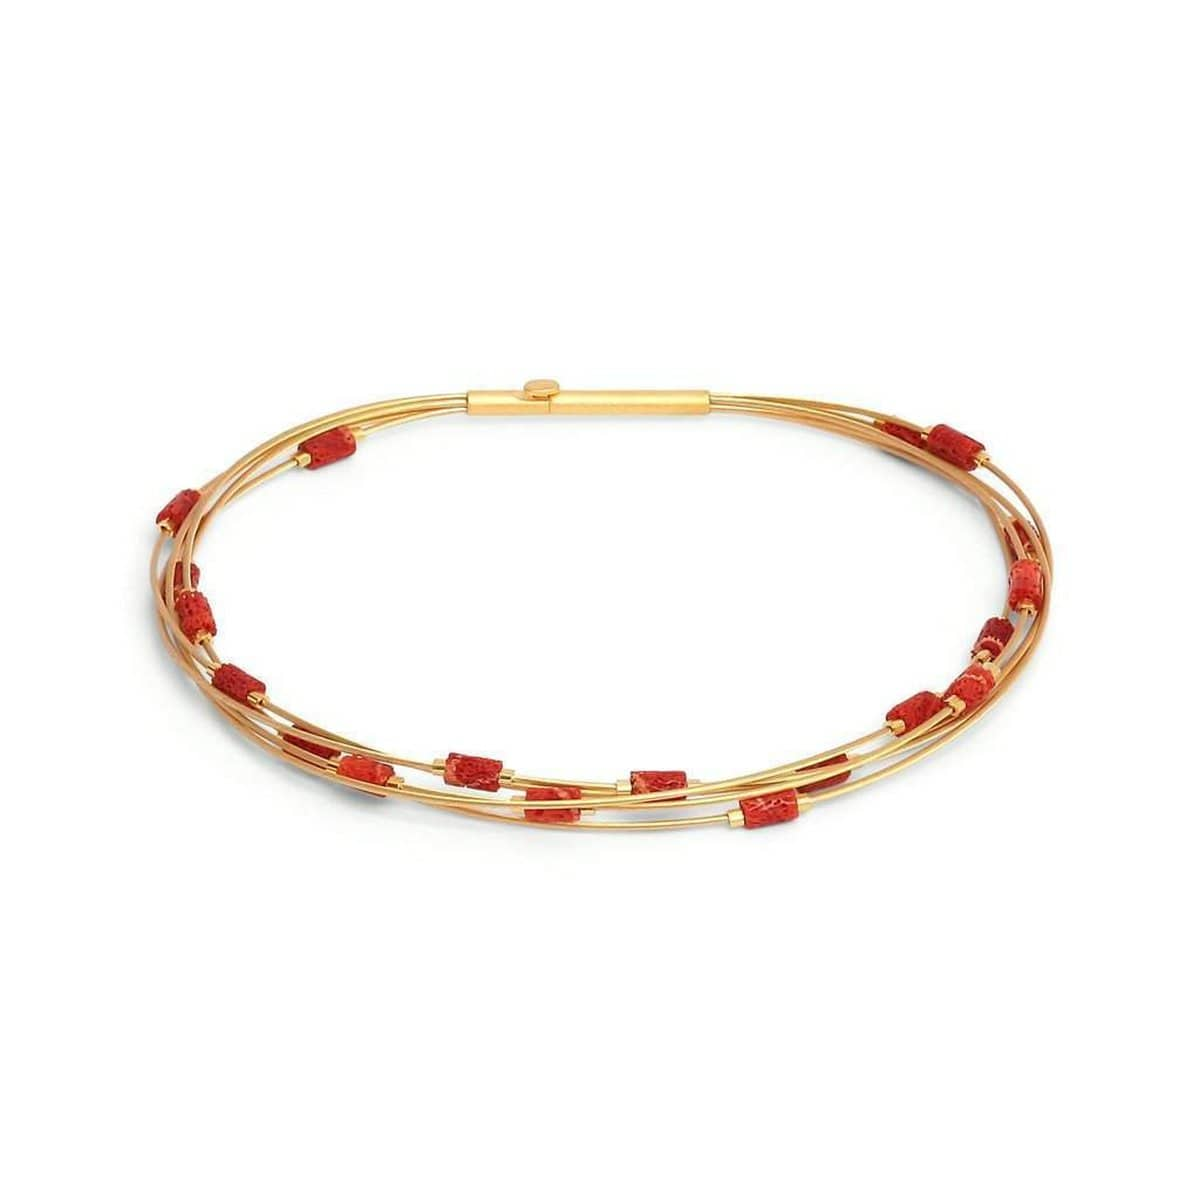 Robina Red Coral Bracelet - 62510296-Bernd Wolf-Renee Taylor Gallery